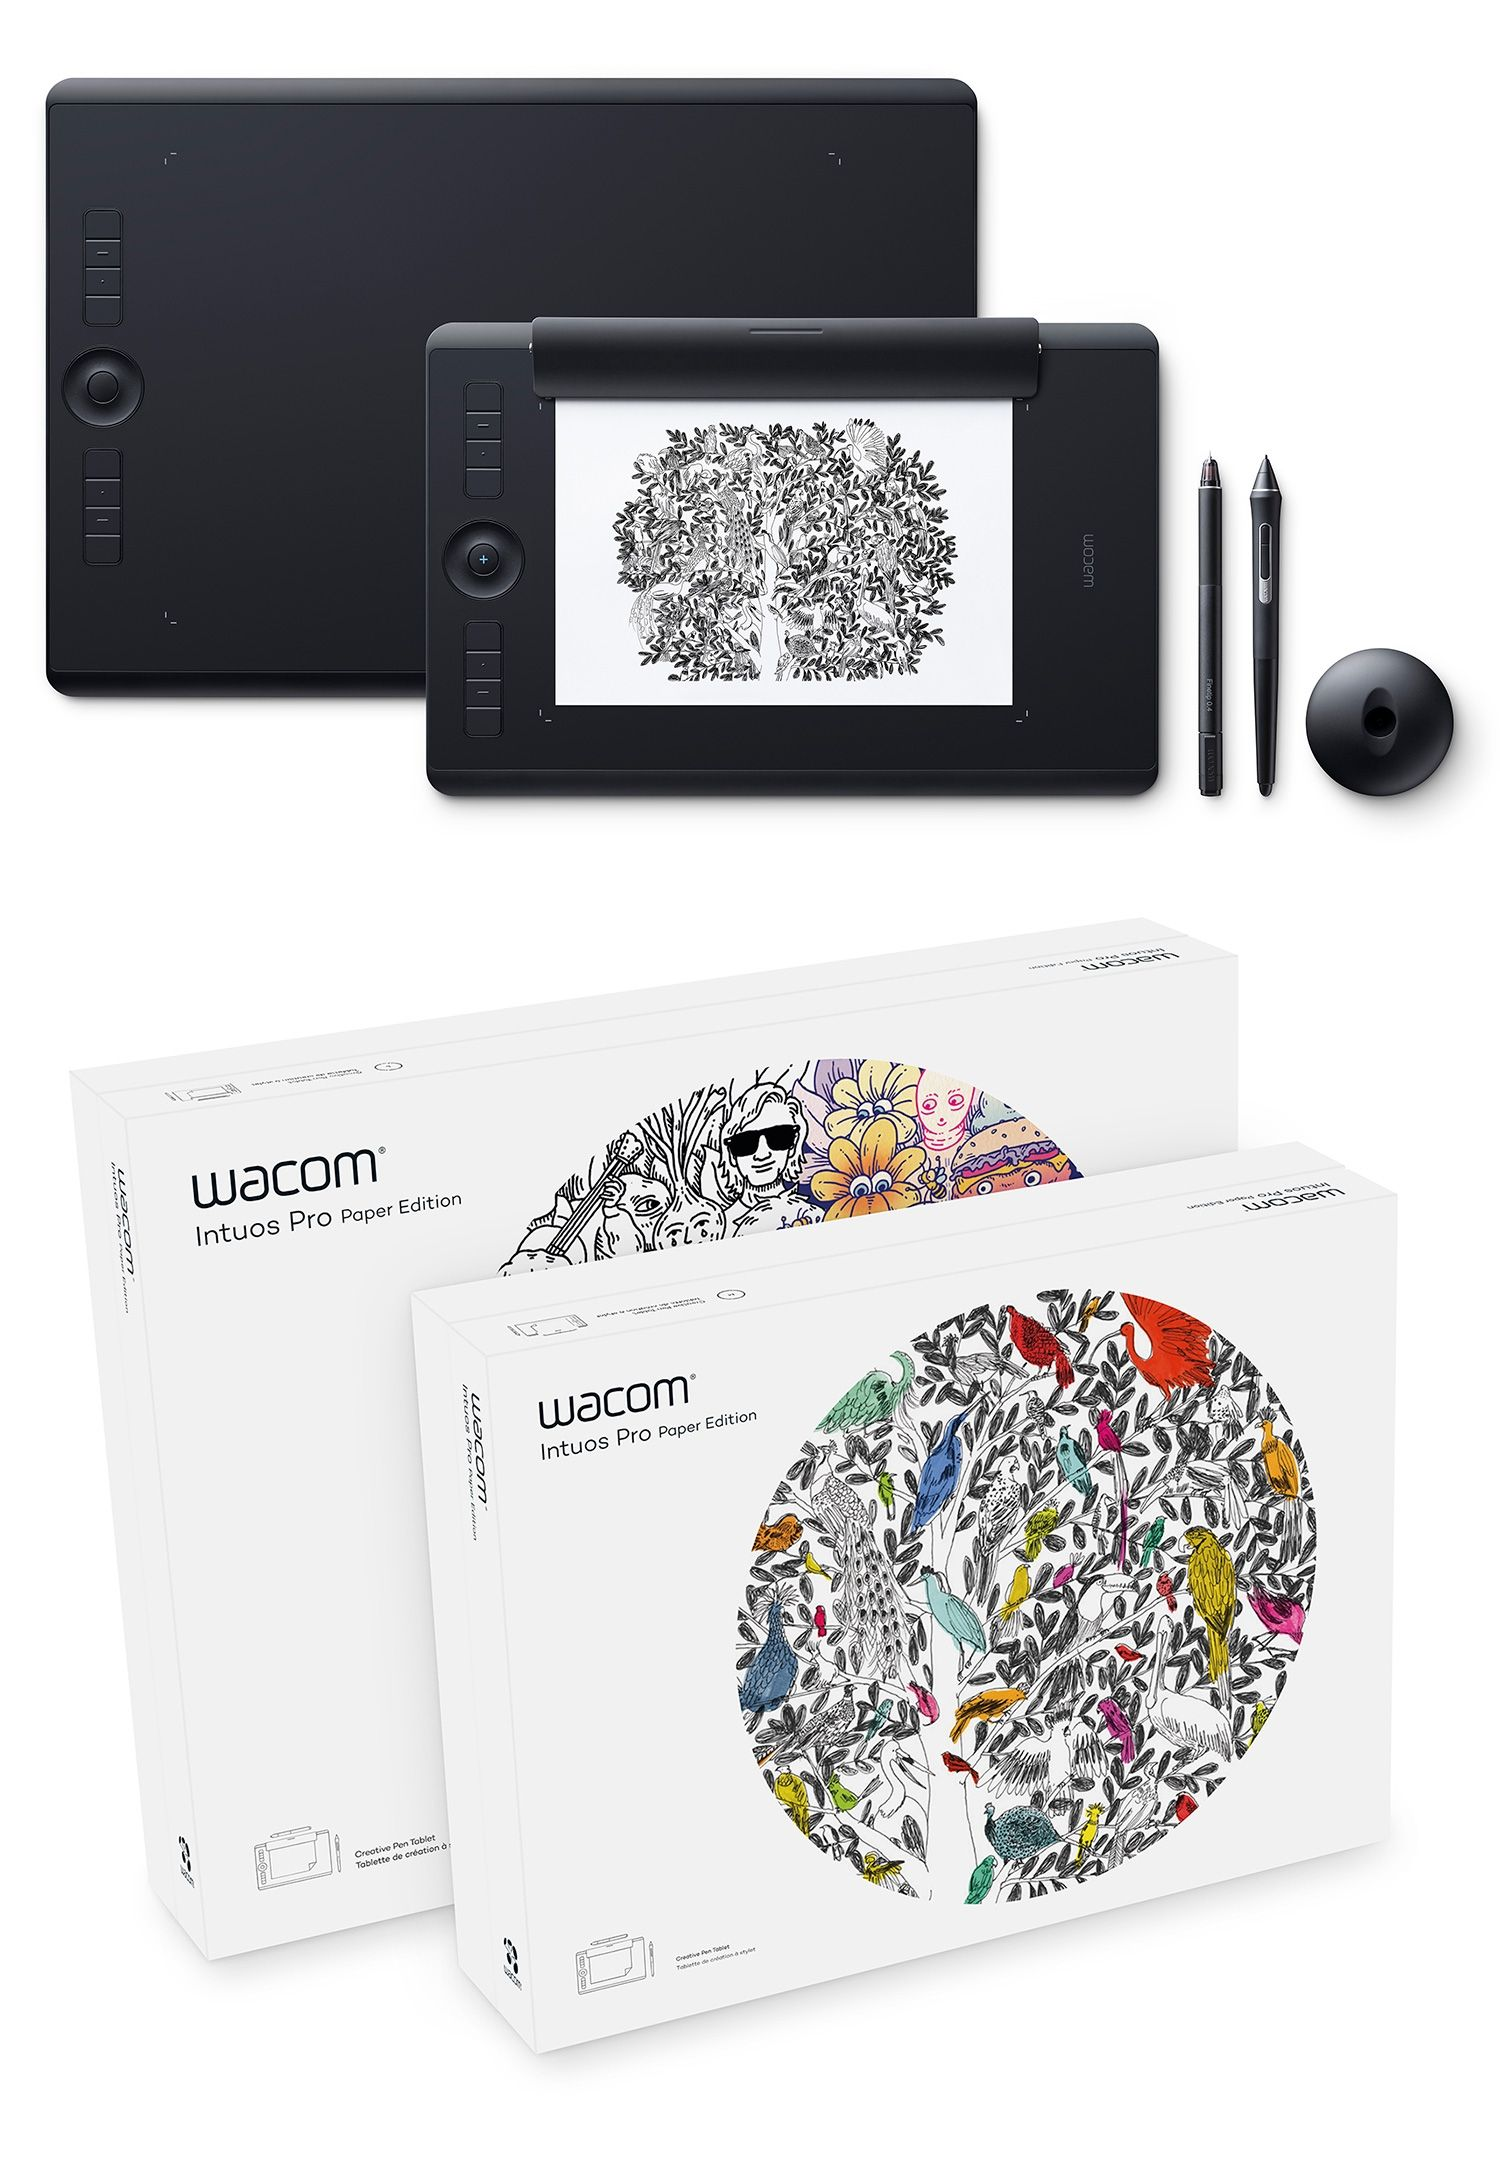 Wacom has a new Intuos Pro tablet - and there's a Paper Edition you